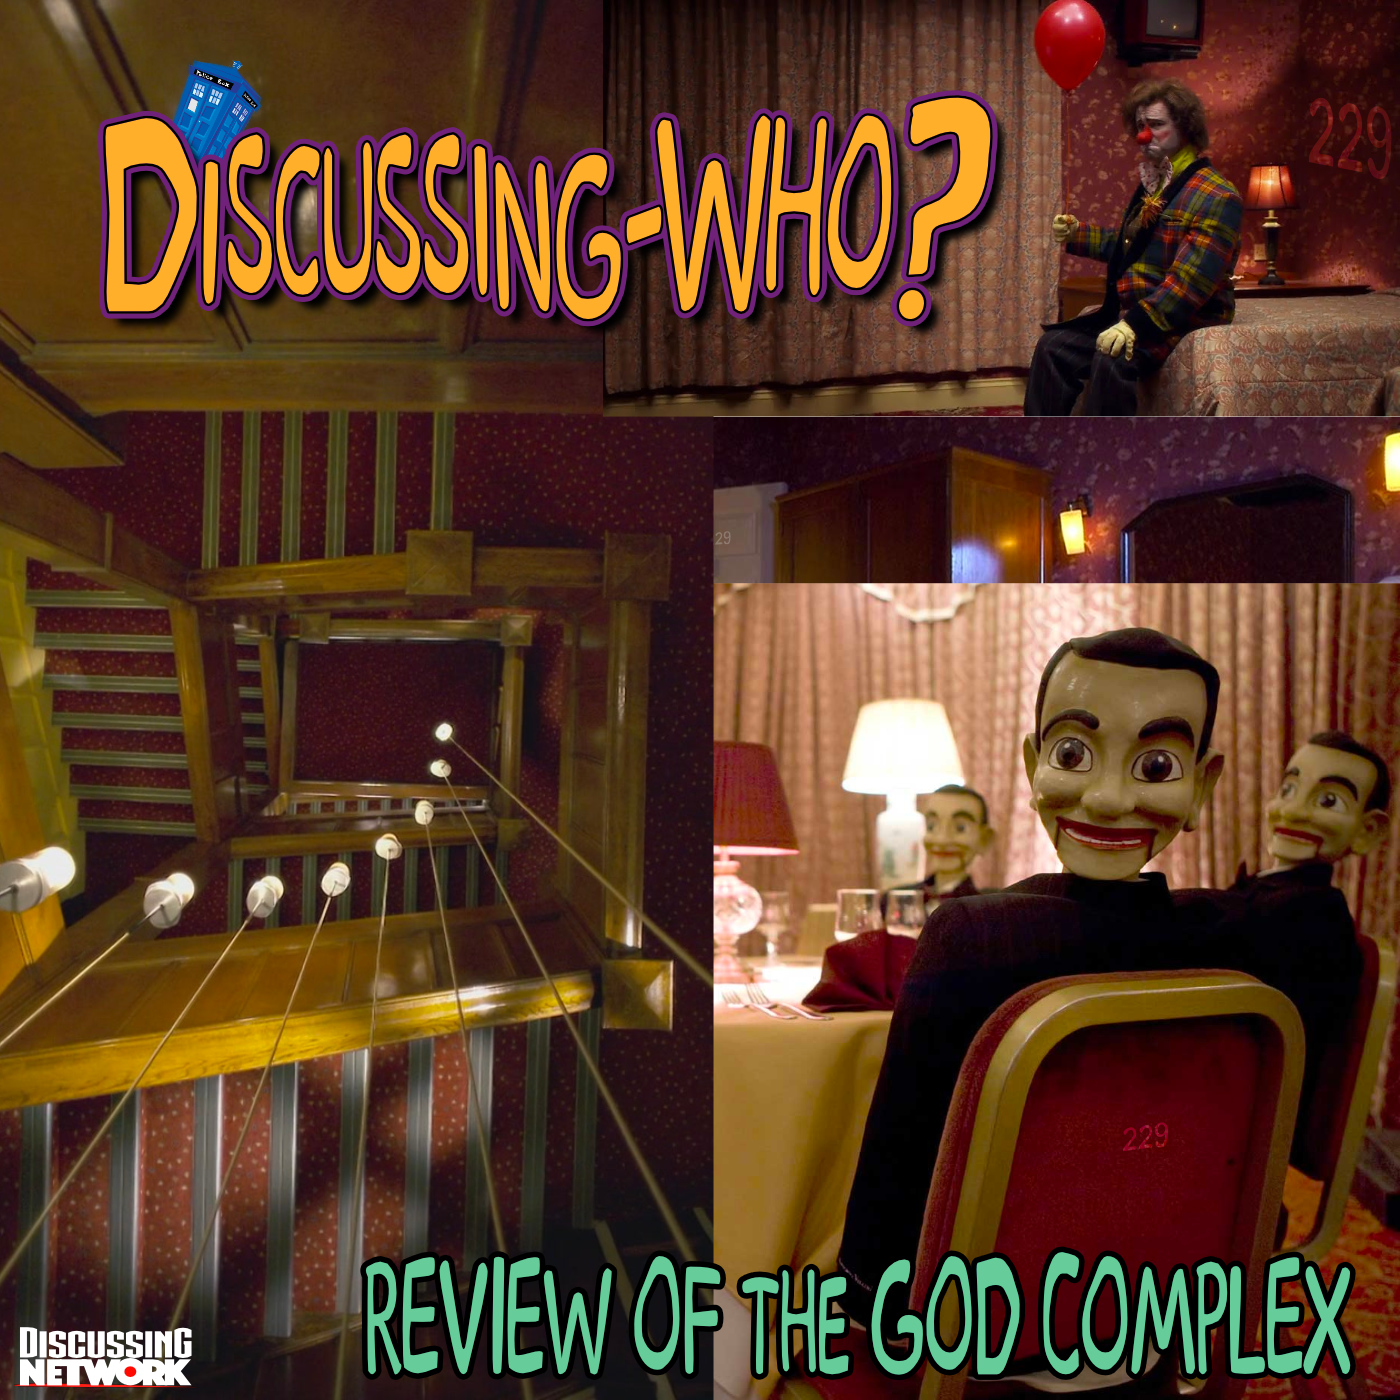 Discussing Who Review of the God Complex, Doctor Who Series 6 Episode 11